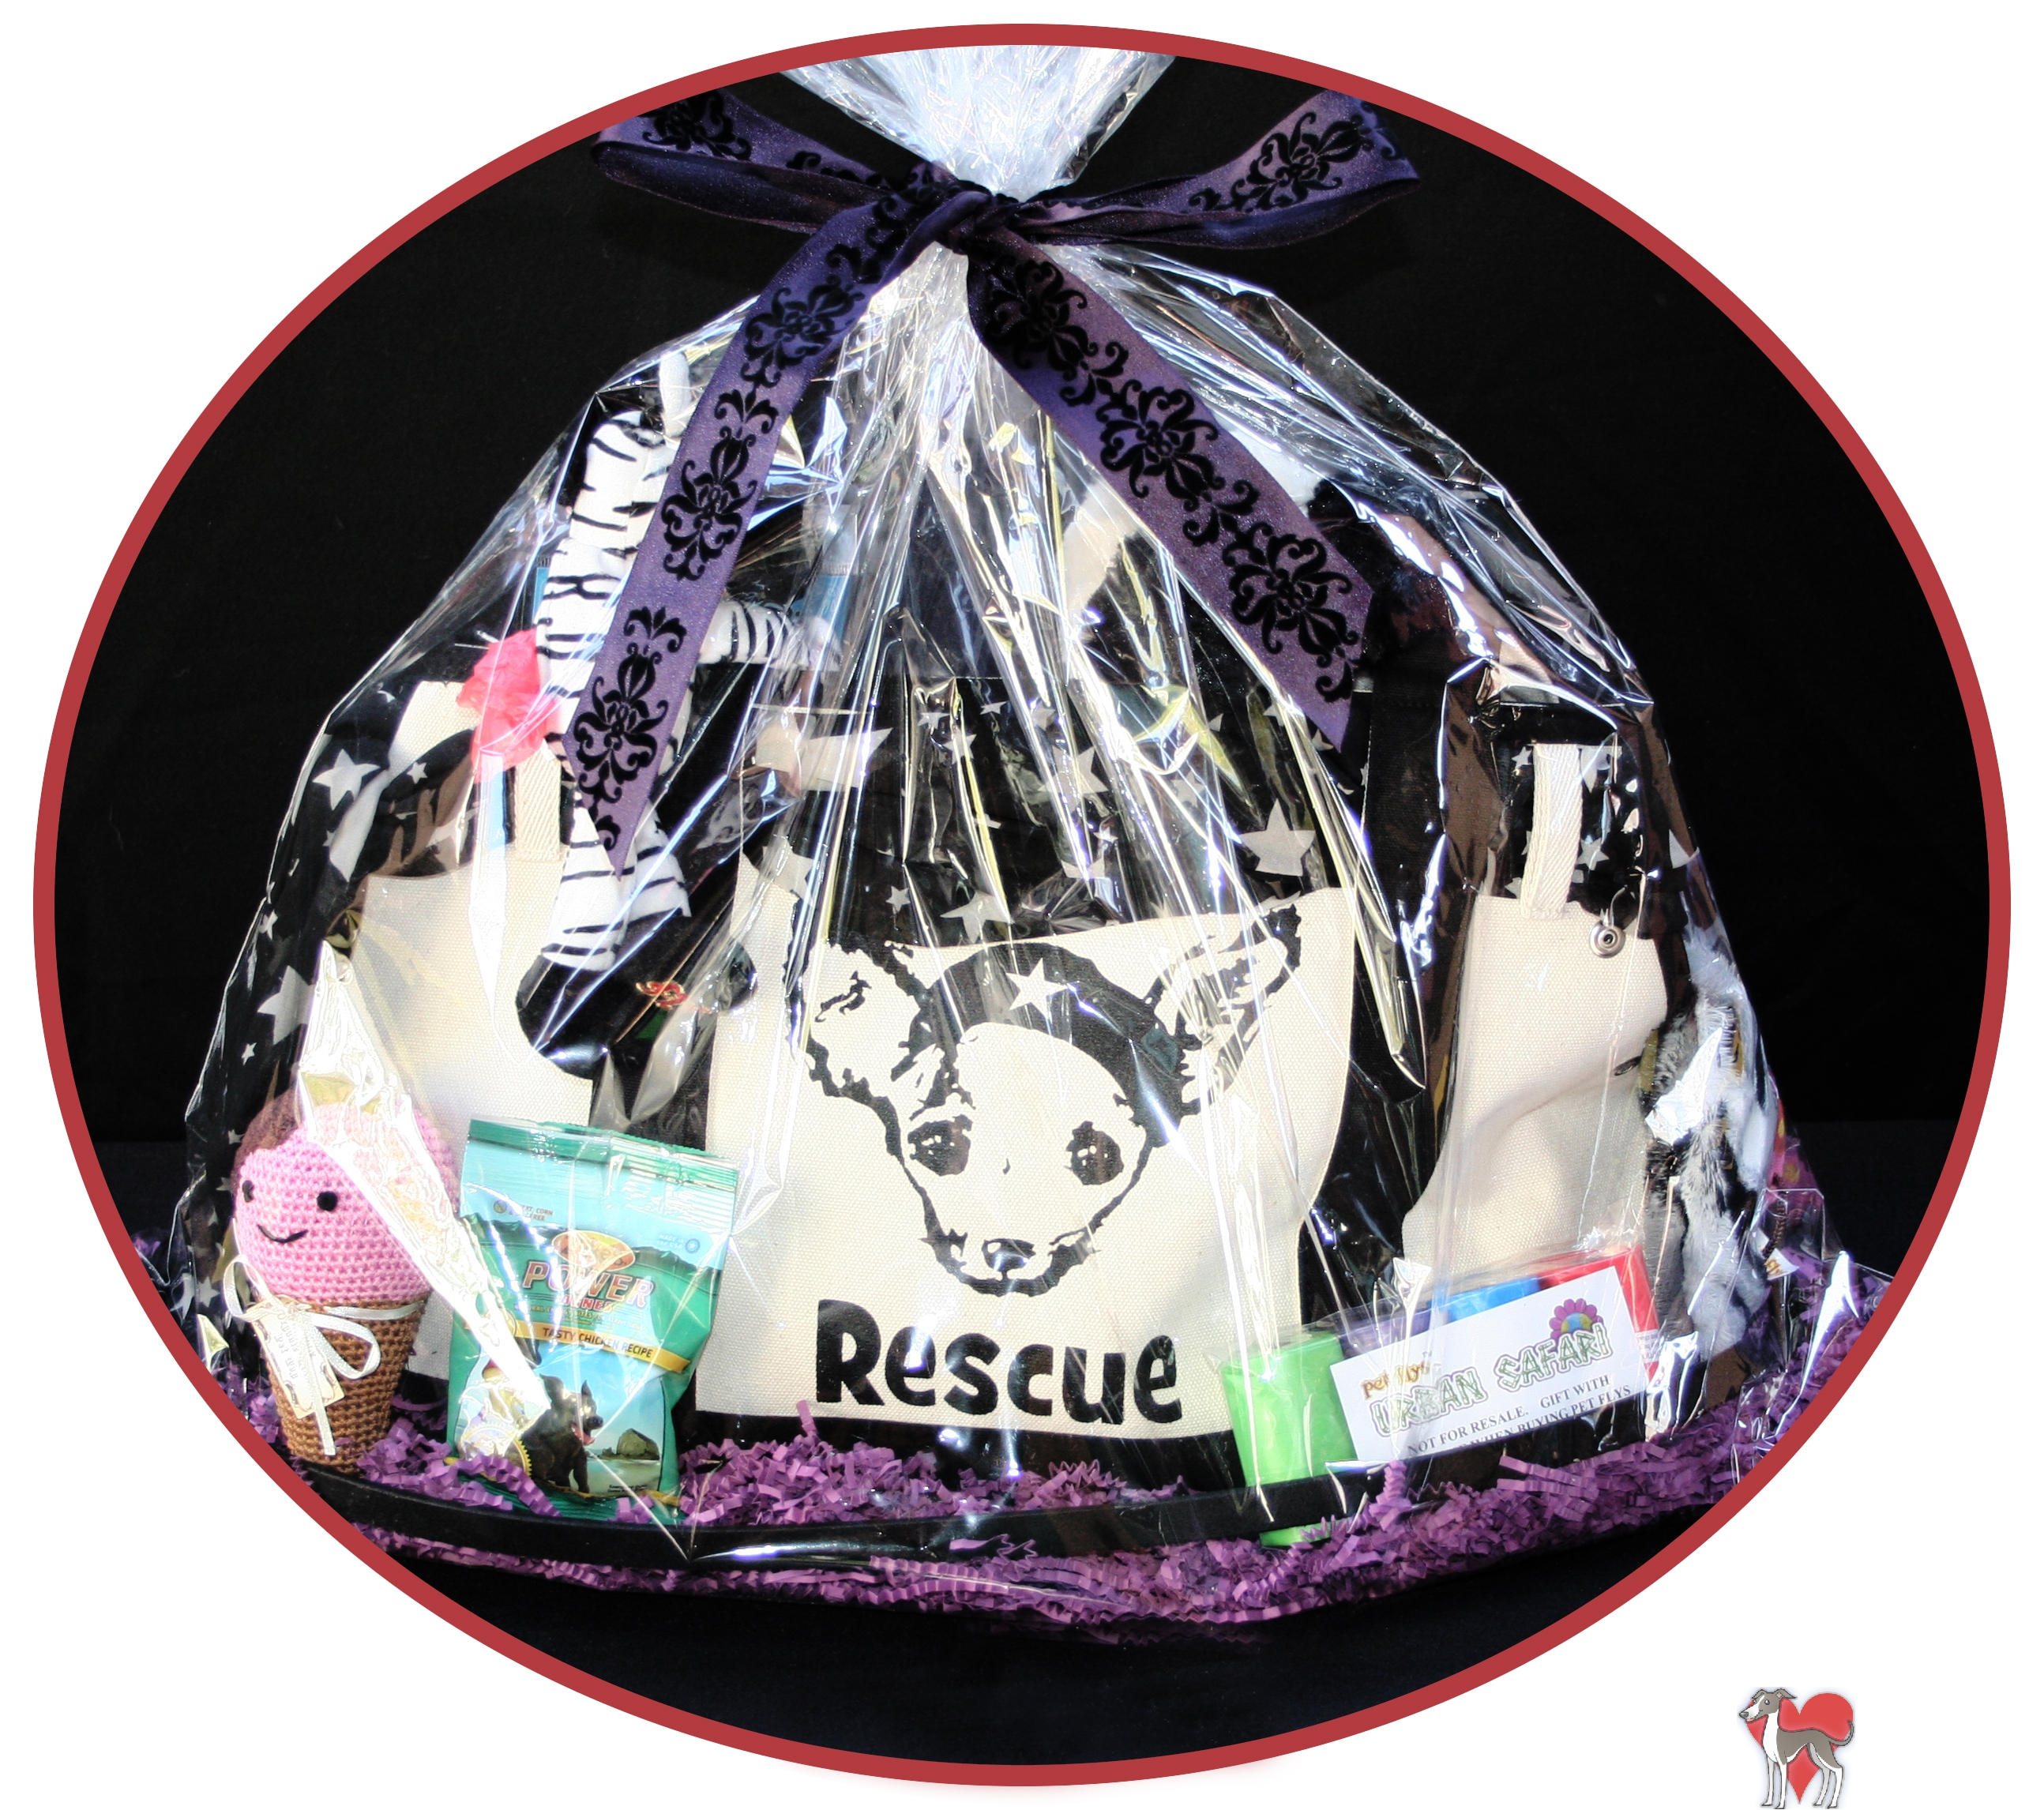 pet raffle basket, dog raffle basket, rescue raffle, romp rescue, romp italian greyhound, petflys, pet flys, pet carrier, trendy pet carriers, pet totes, pet travel carriers, pet travel totes